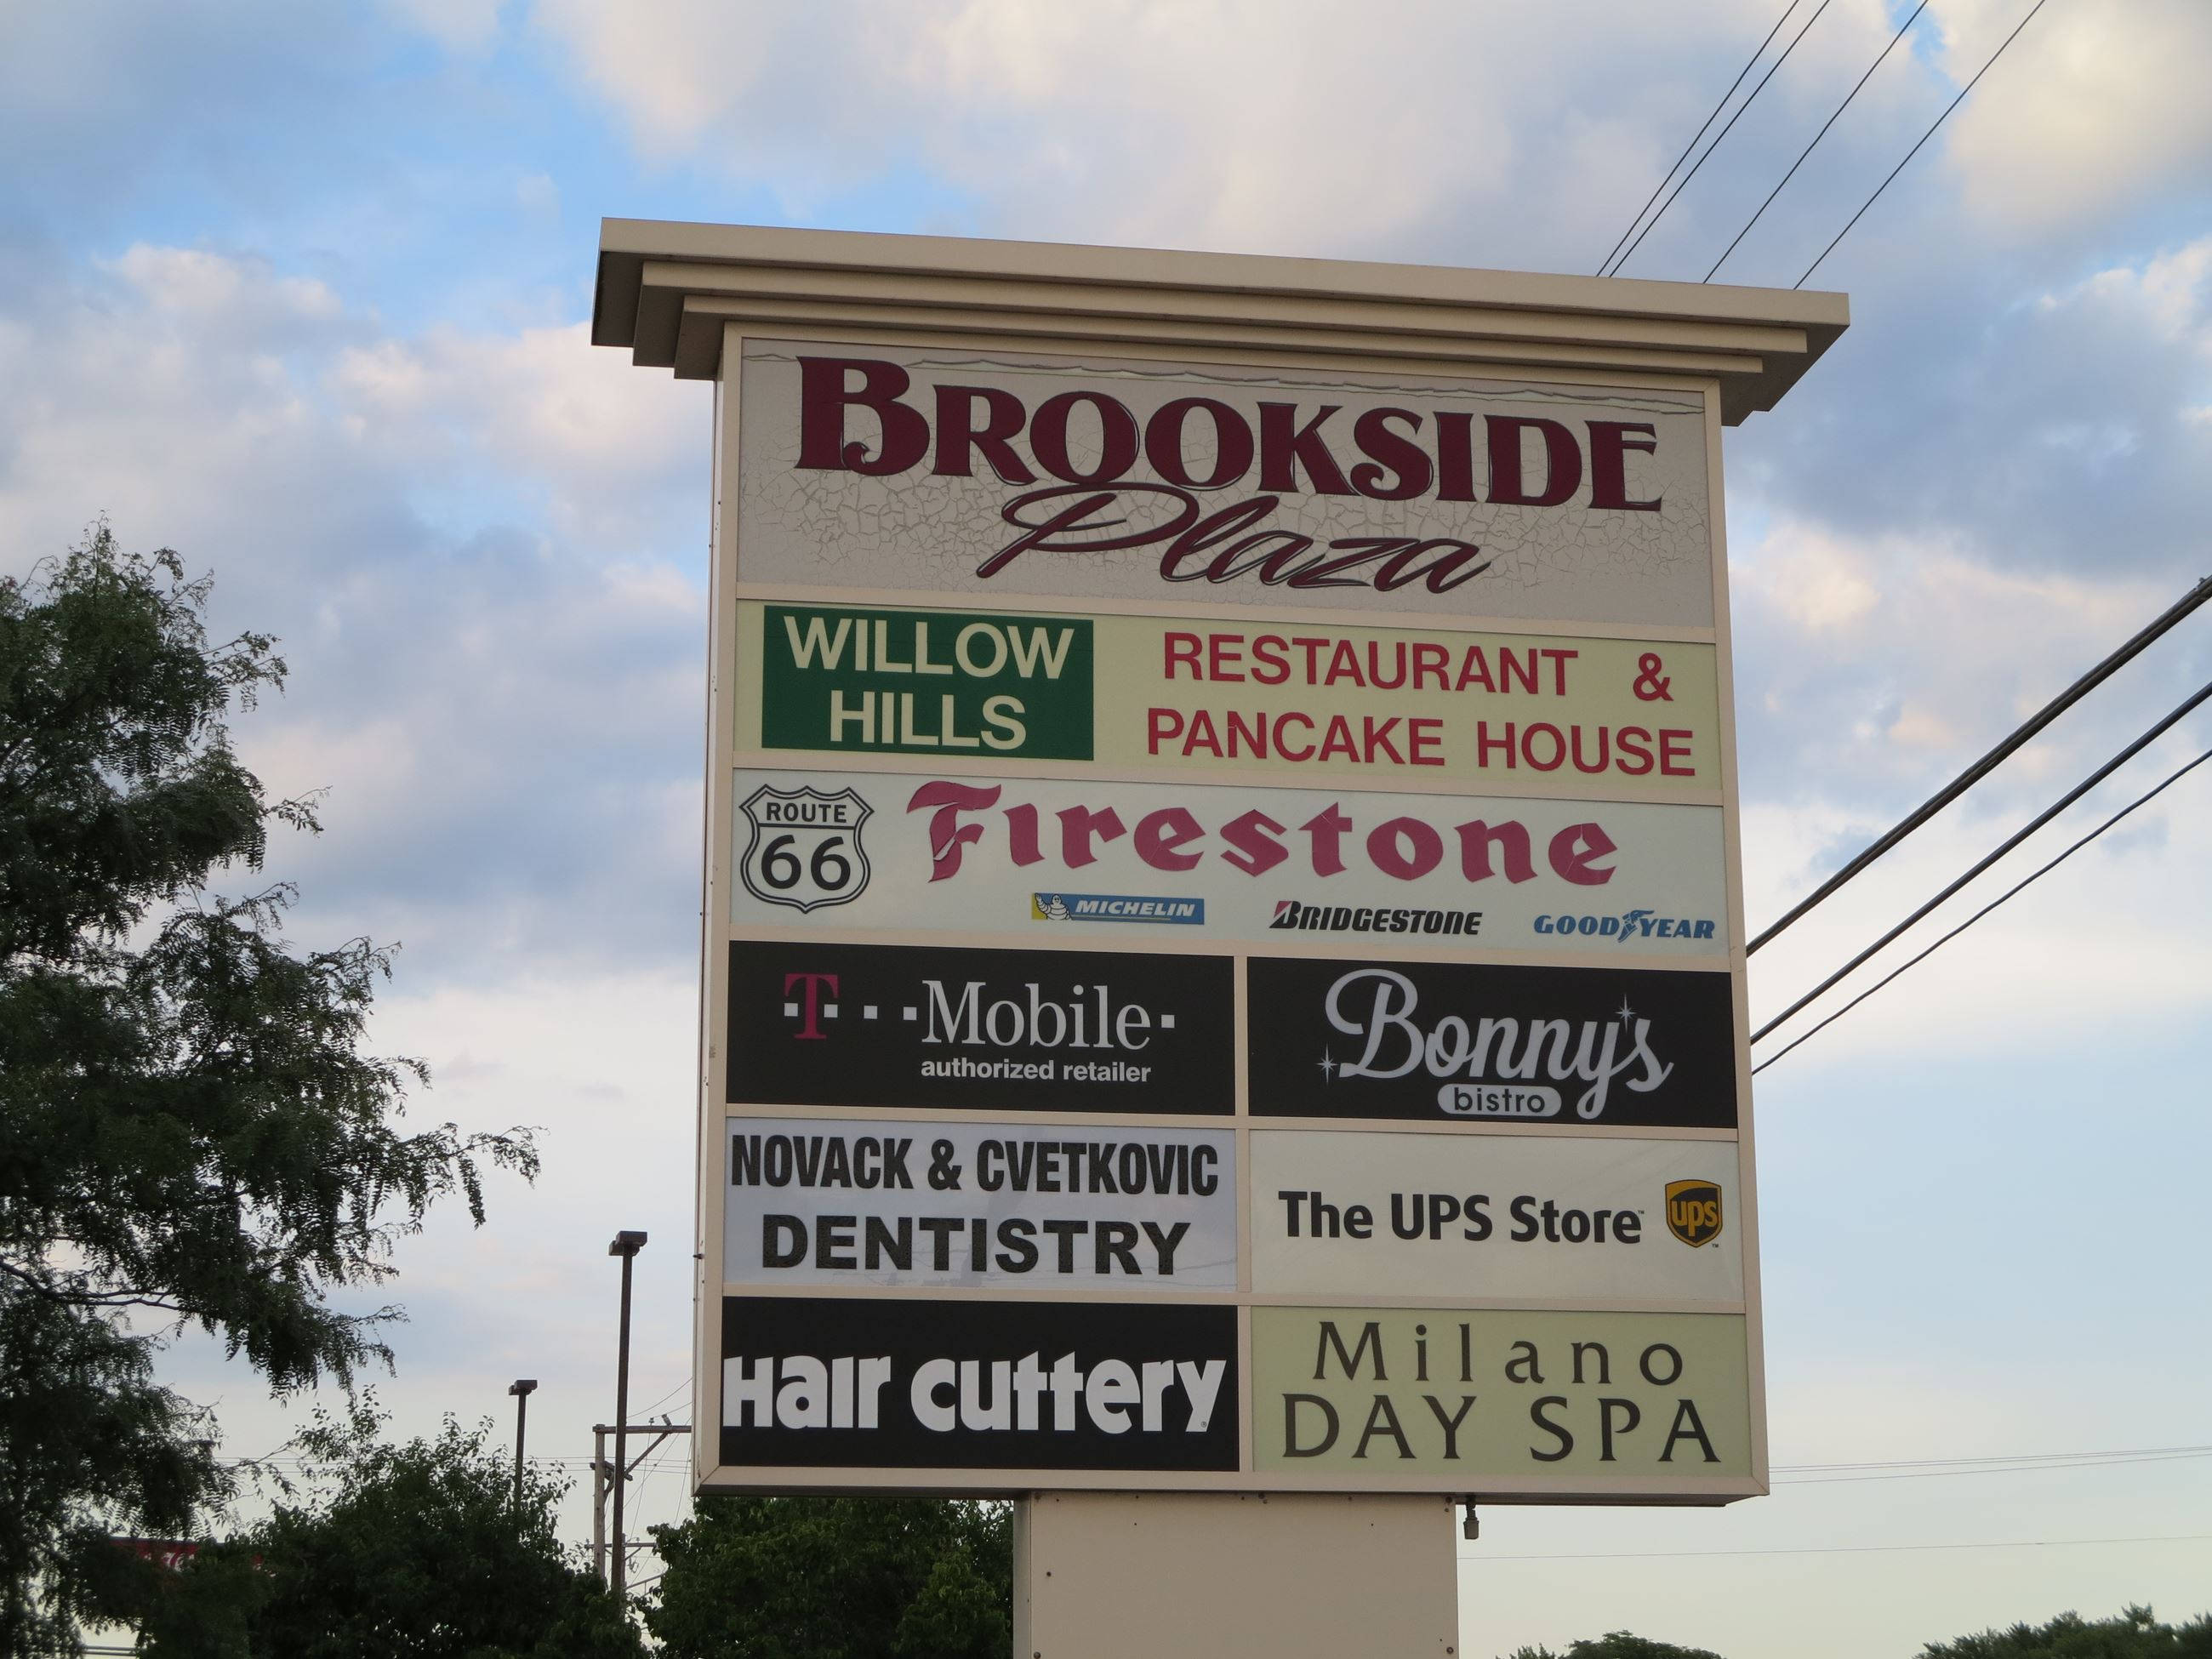 Brookside Plaza